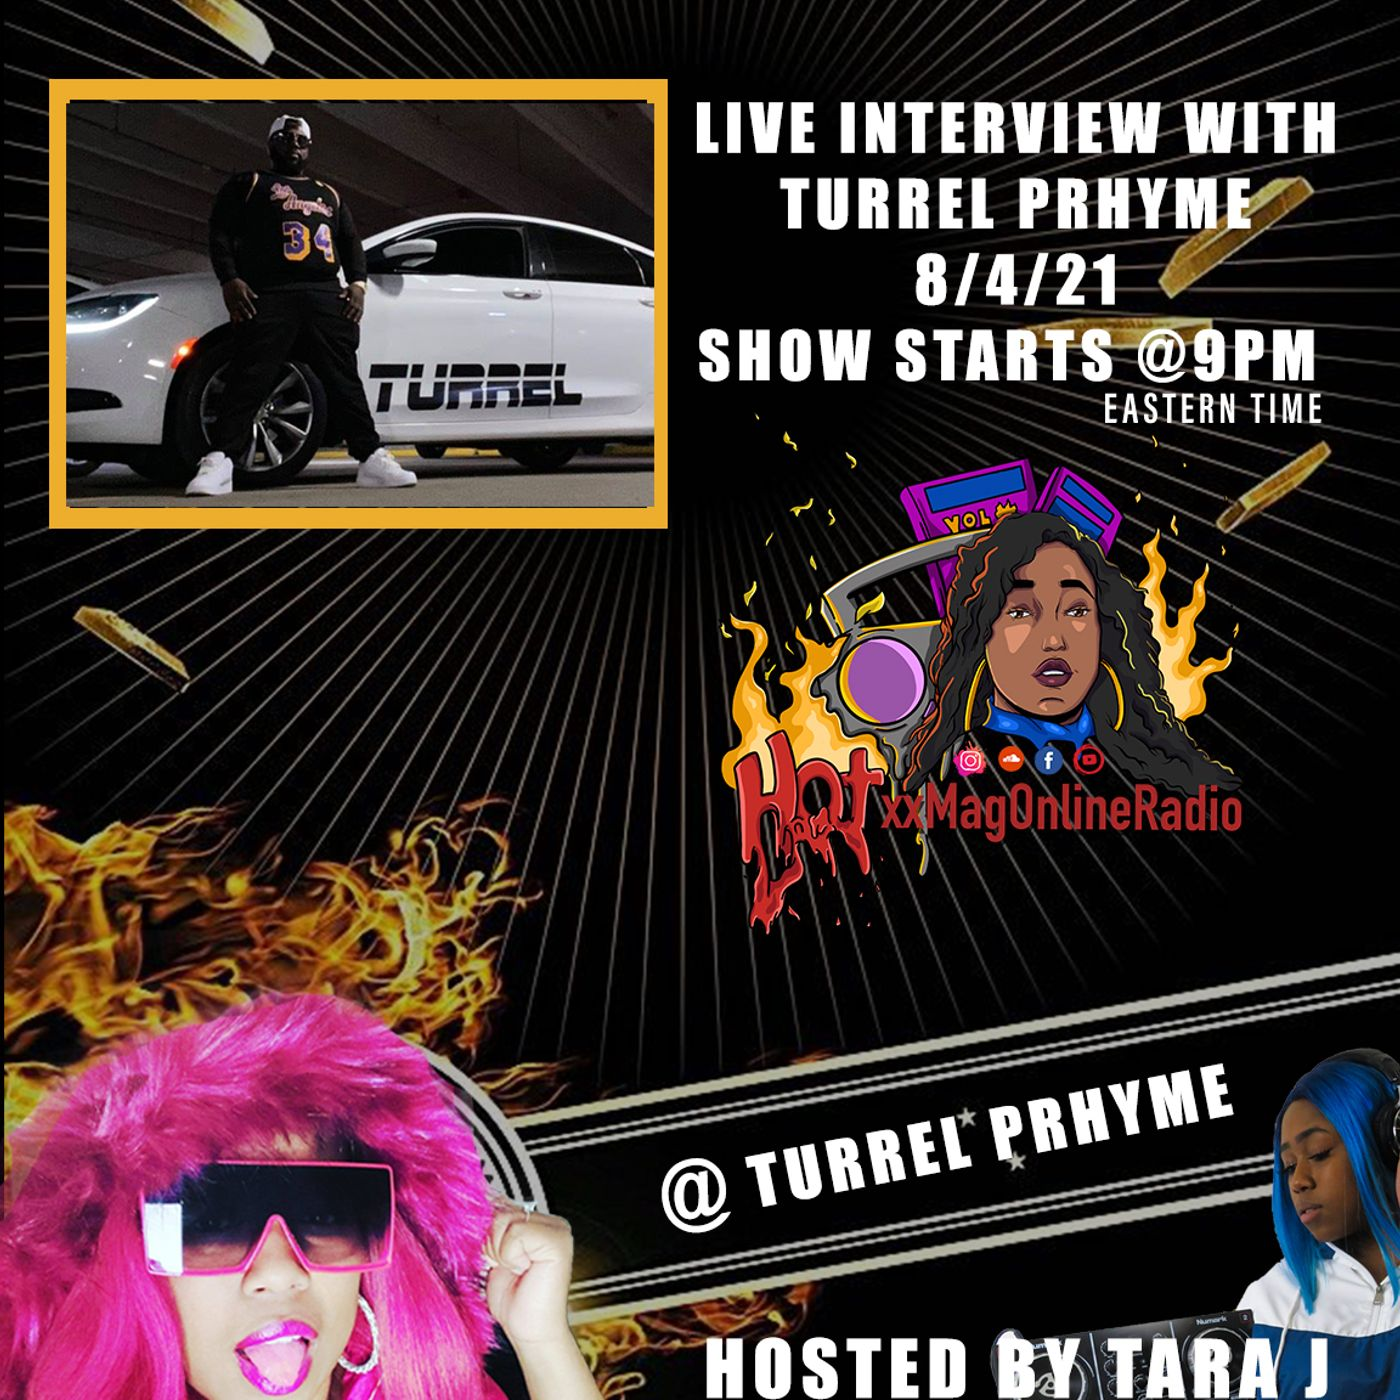 HotxxMagOnlineRadio LIVE With Turrel Prhyme   Hosted By Tara J